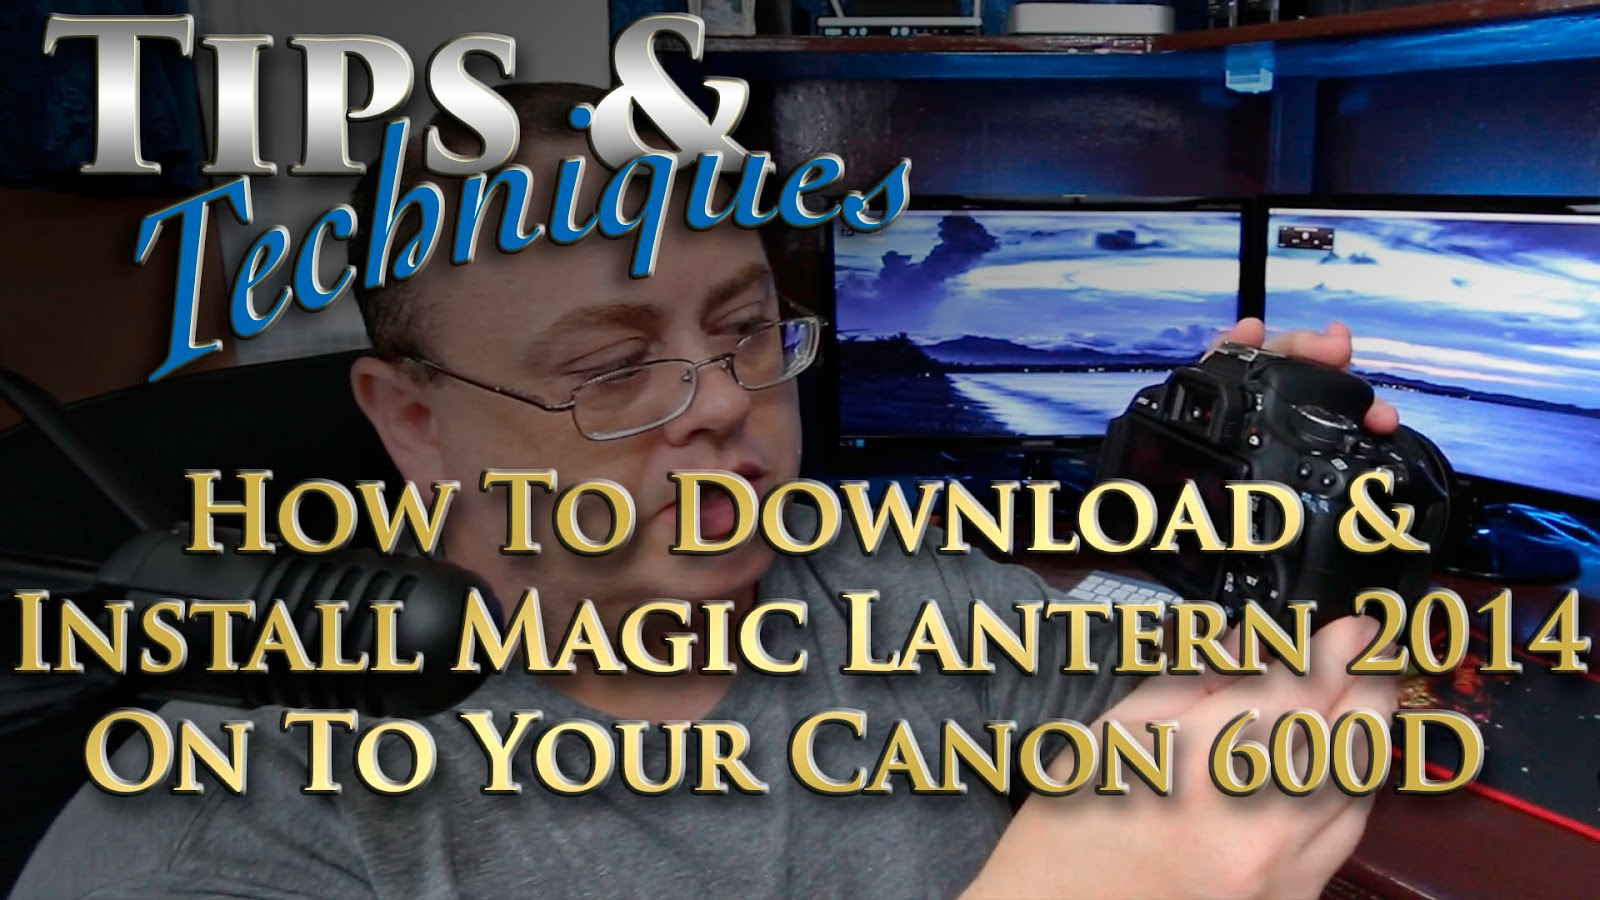 How To Download & Install Magic Lantern 2014 On To Your Canon 600D